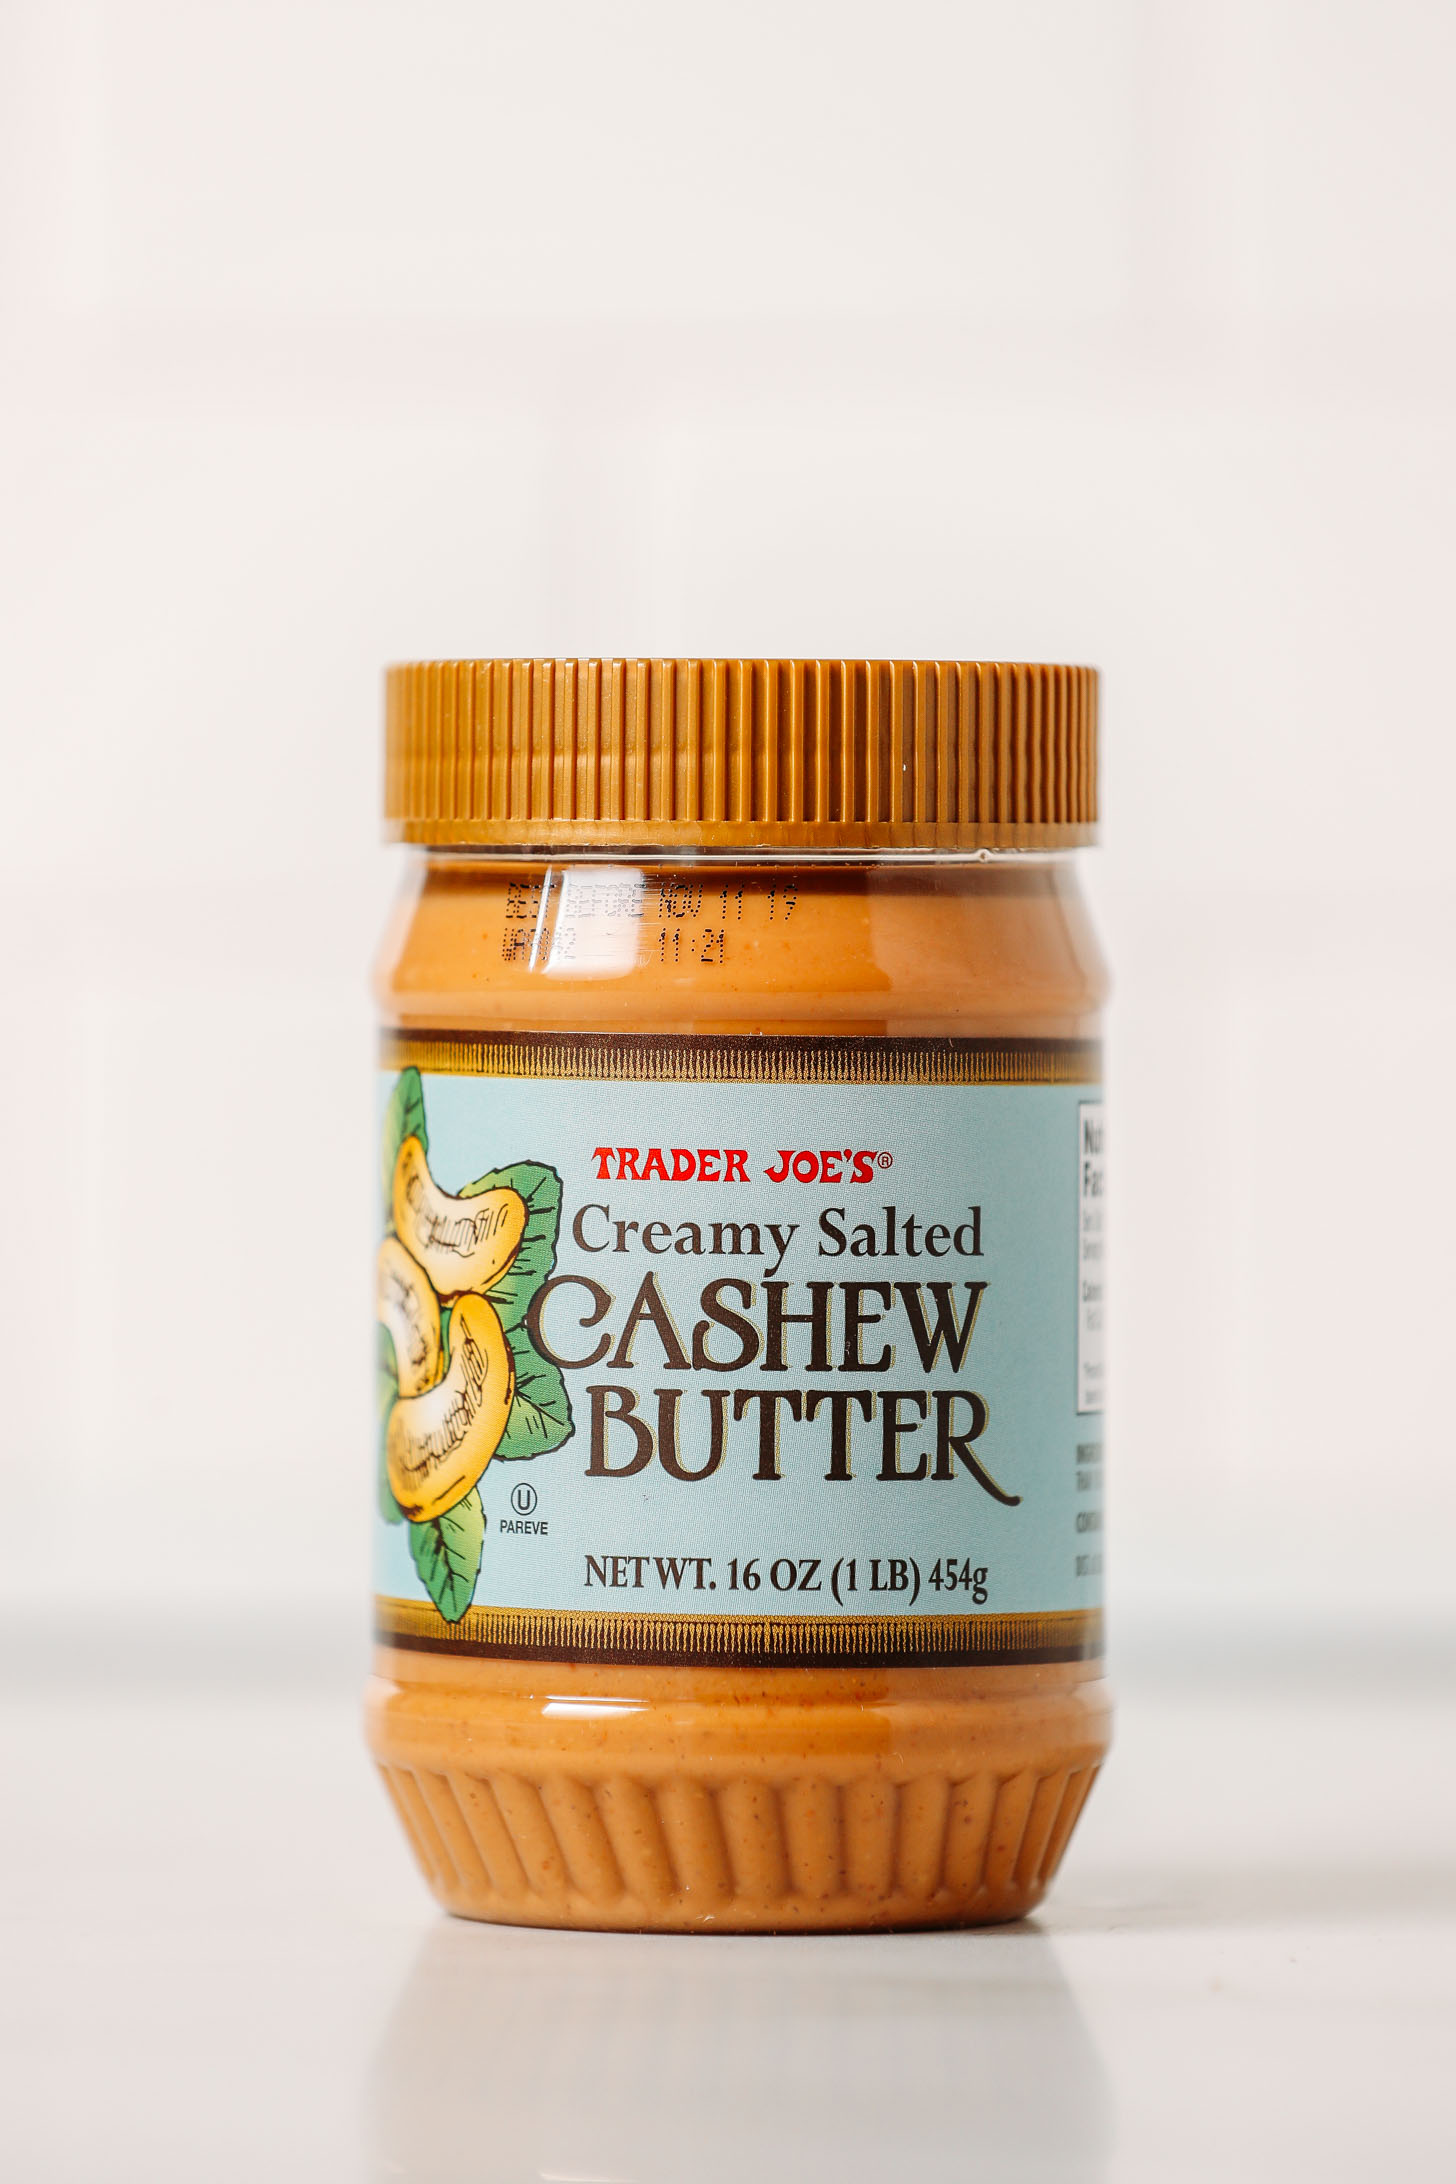 Jar of Trader Joe's Creamy Salted Cashew Butter for our unbiased cashew butters review